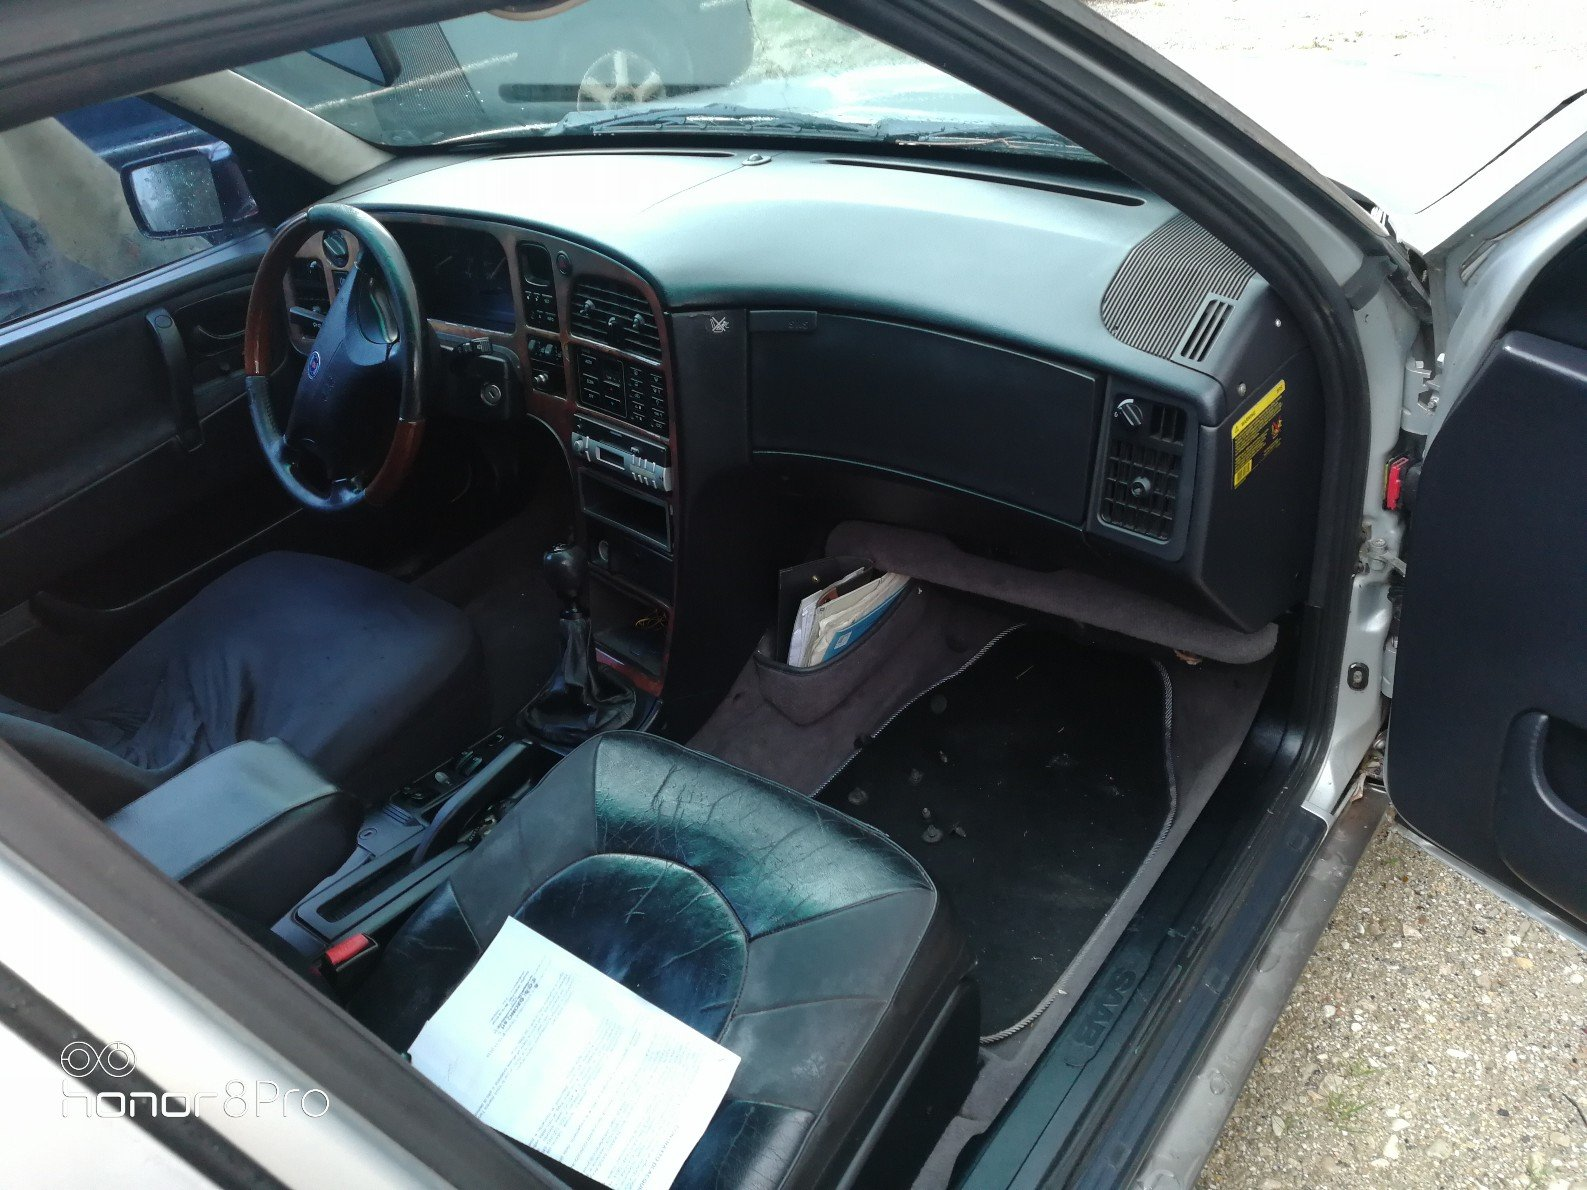 1997 Saab 9000 turbo 16 cse For Sale (picture 6 of 6)